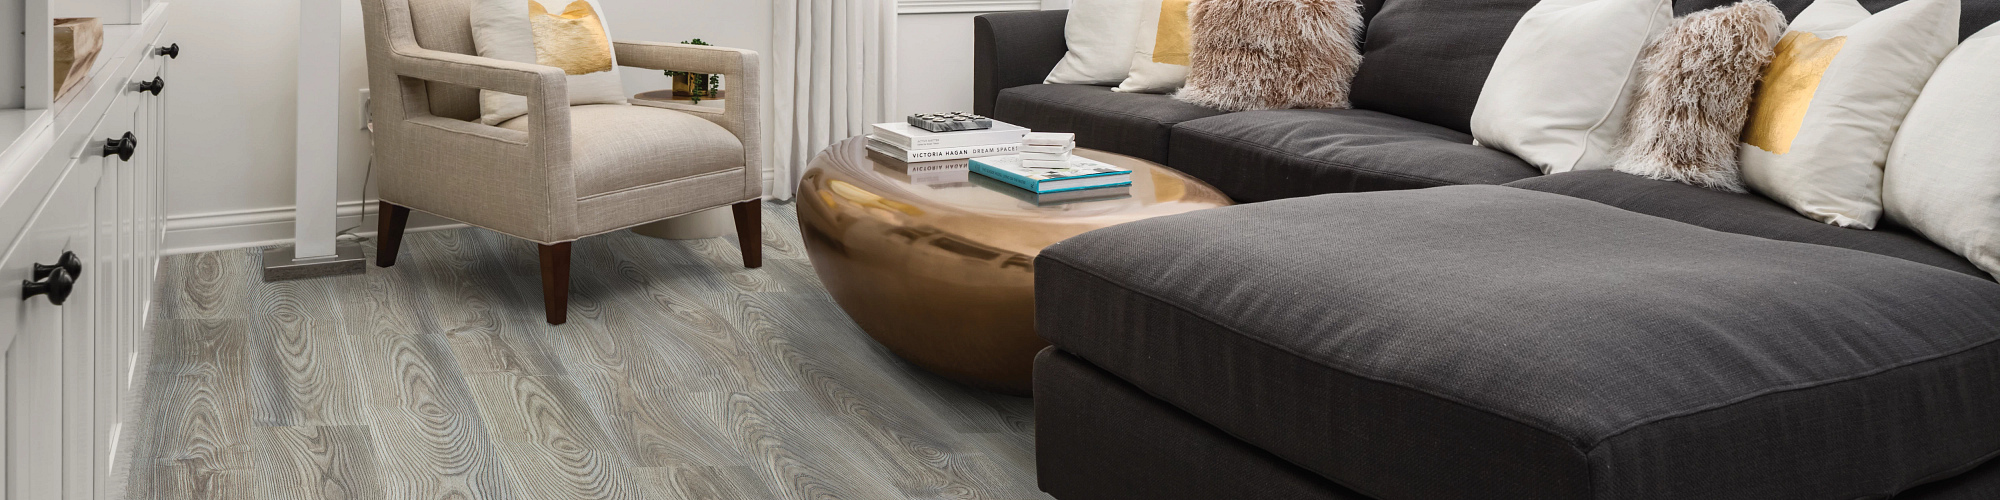 Vinyl-Elan-Plank-ve388-07062-Greychestnut-7in-Living-Room-2020